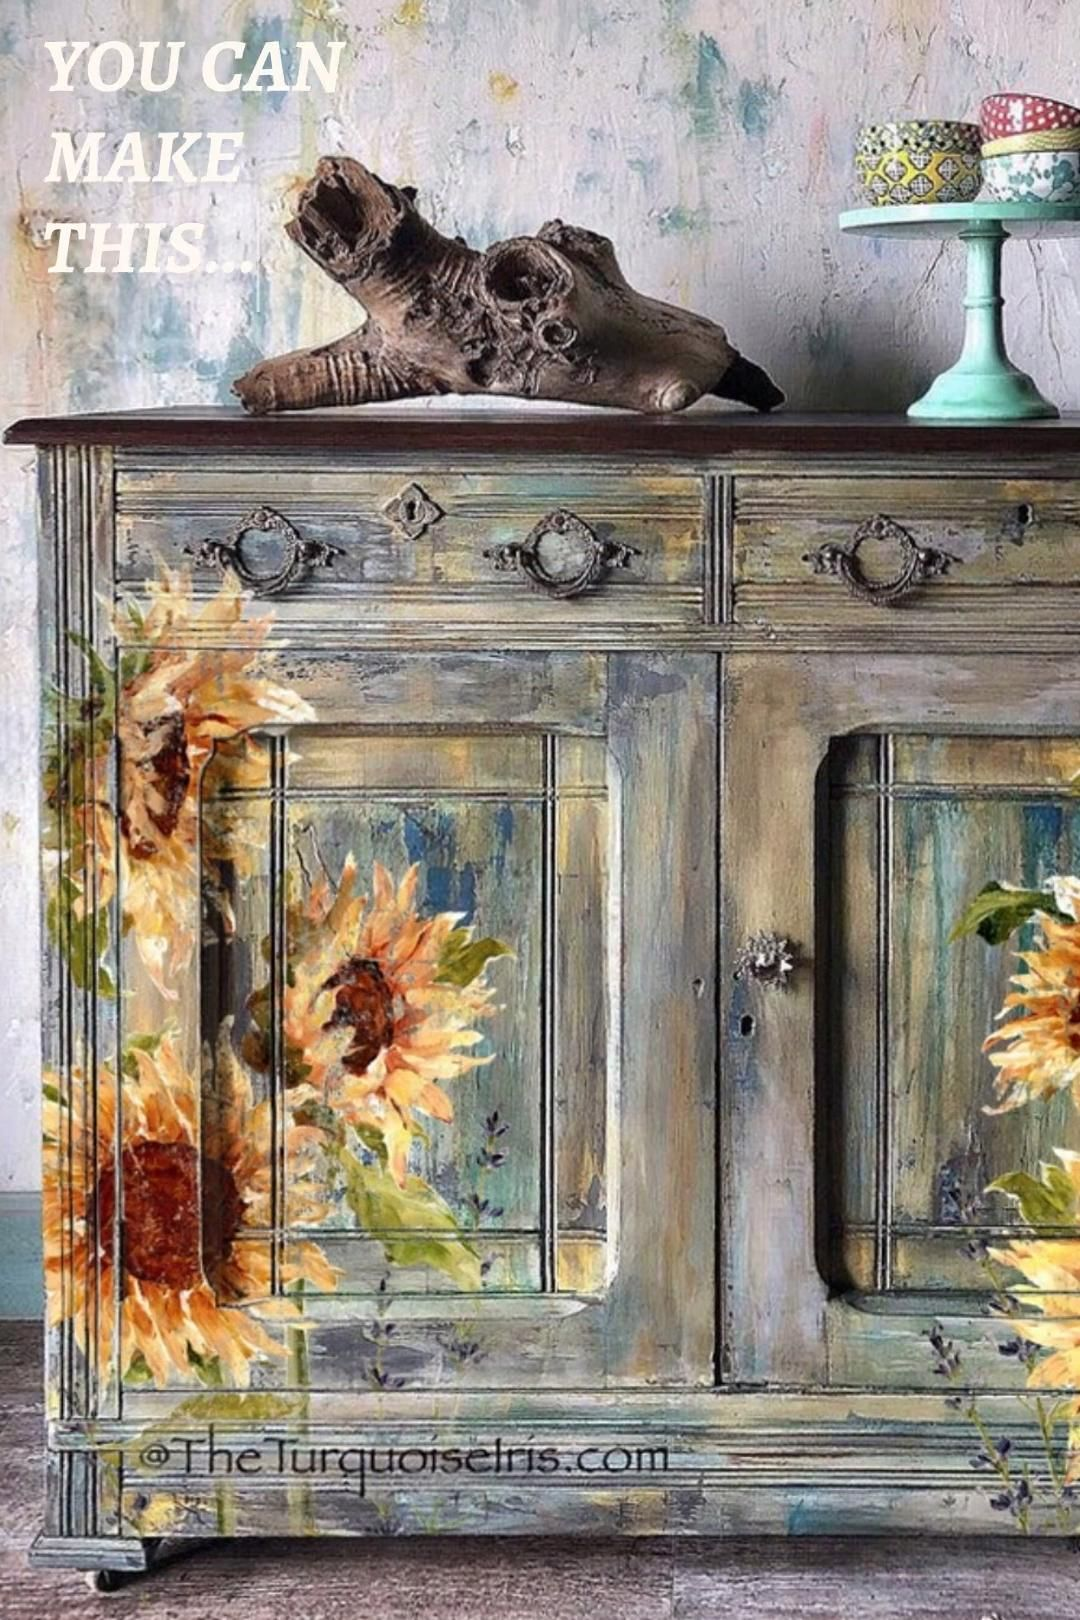 See the latest in easy DIY home decor with the 2020 release of Iron Orchid Designs' Decor Transfers. These gorgeous floral decals featuring sunflowers, roses and lavender blossoms can be use in any painted furniture makeover. Beautiful rub on transfers that look hand painted!